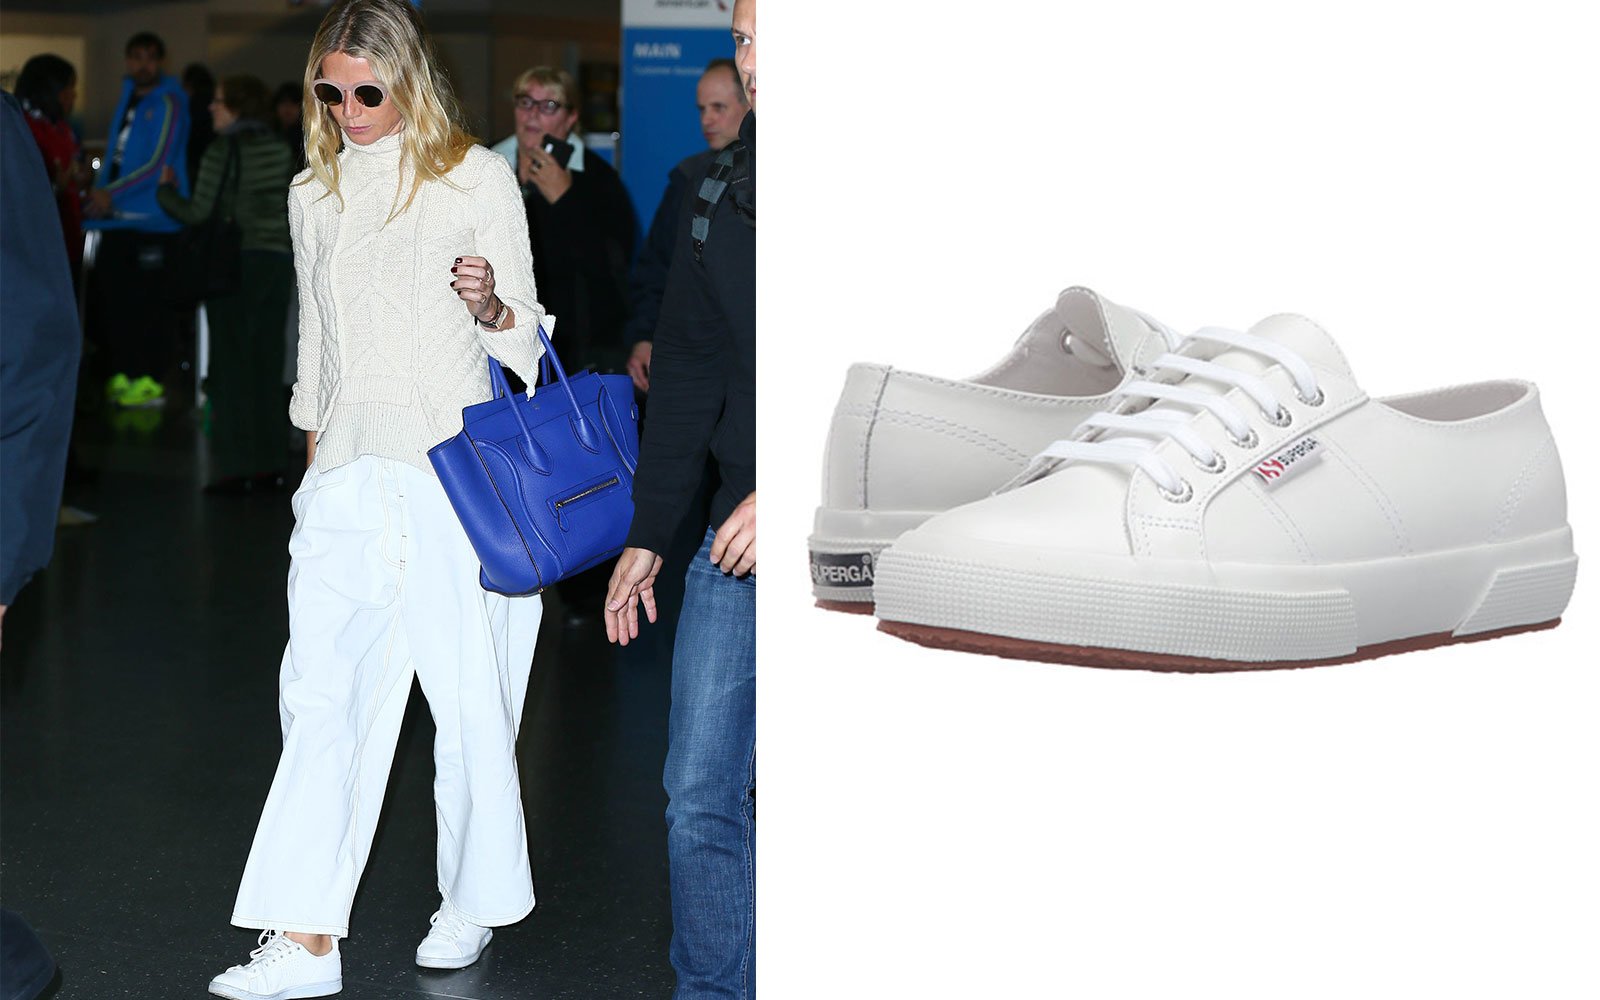 55d22e20 The Stylish Comfy Shoes That Celebrities Wear for Traveling | Travel ...